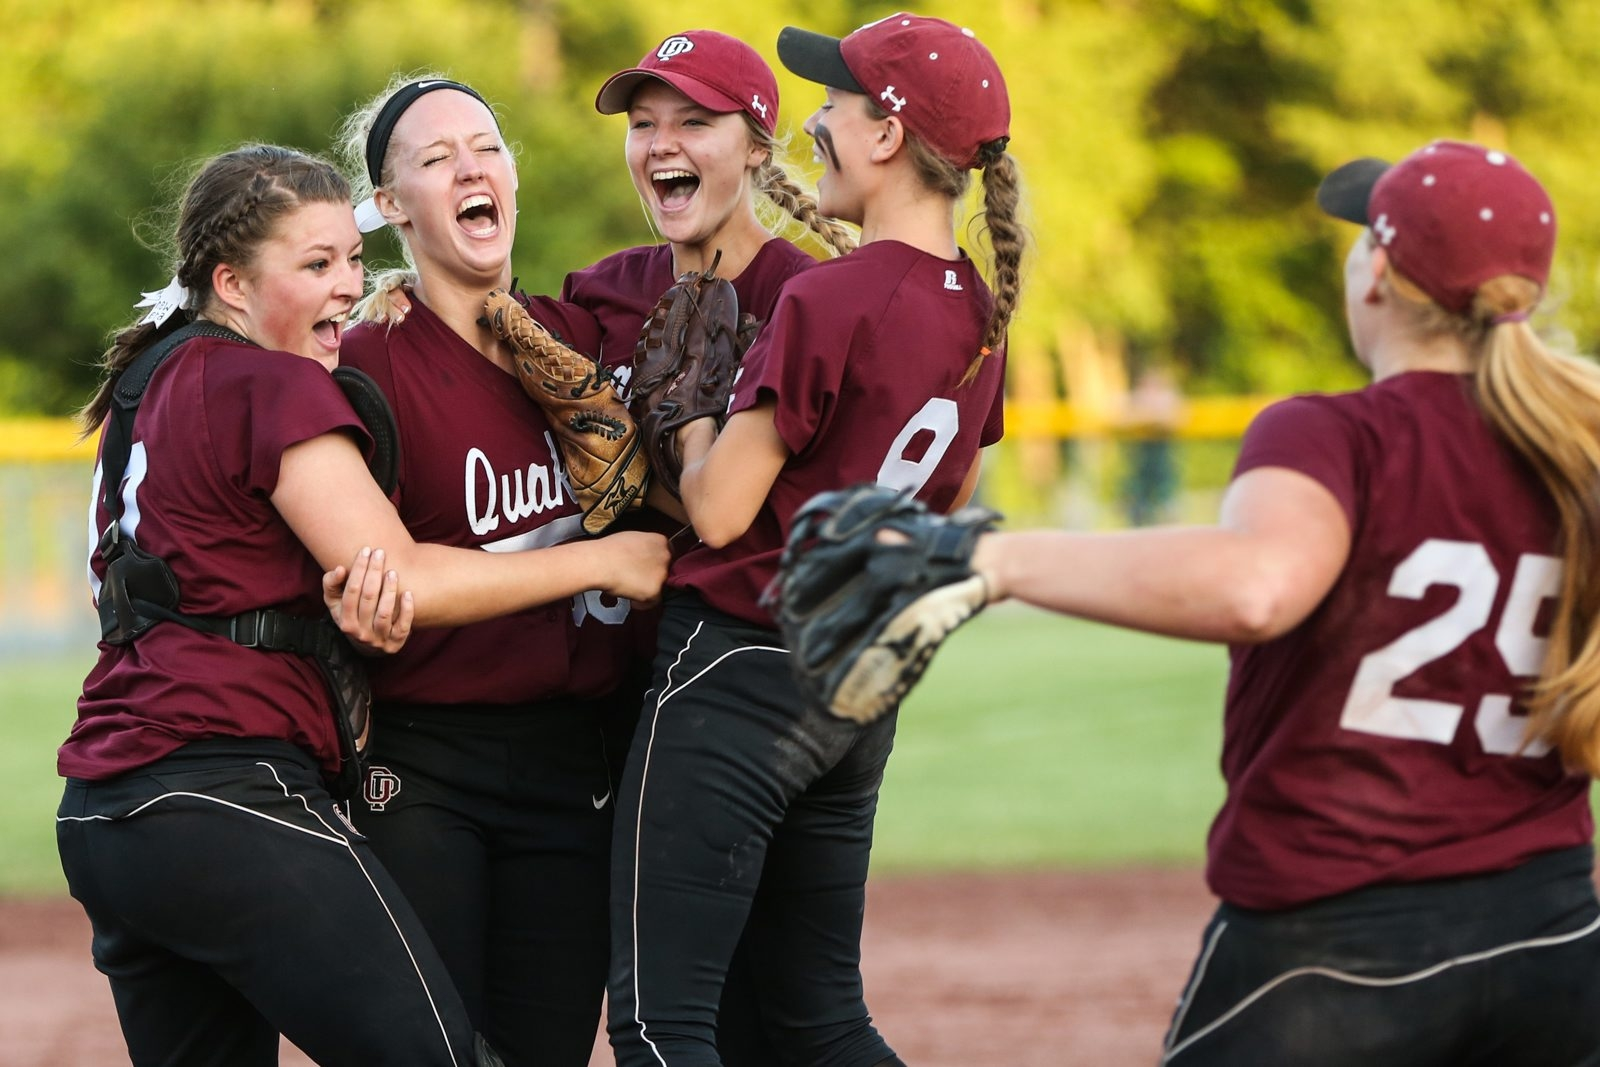 Orchard Park players celebrate the school's first state crown in softball while Starpoint and Alden failed to advance in Class A and Class B, respectively.